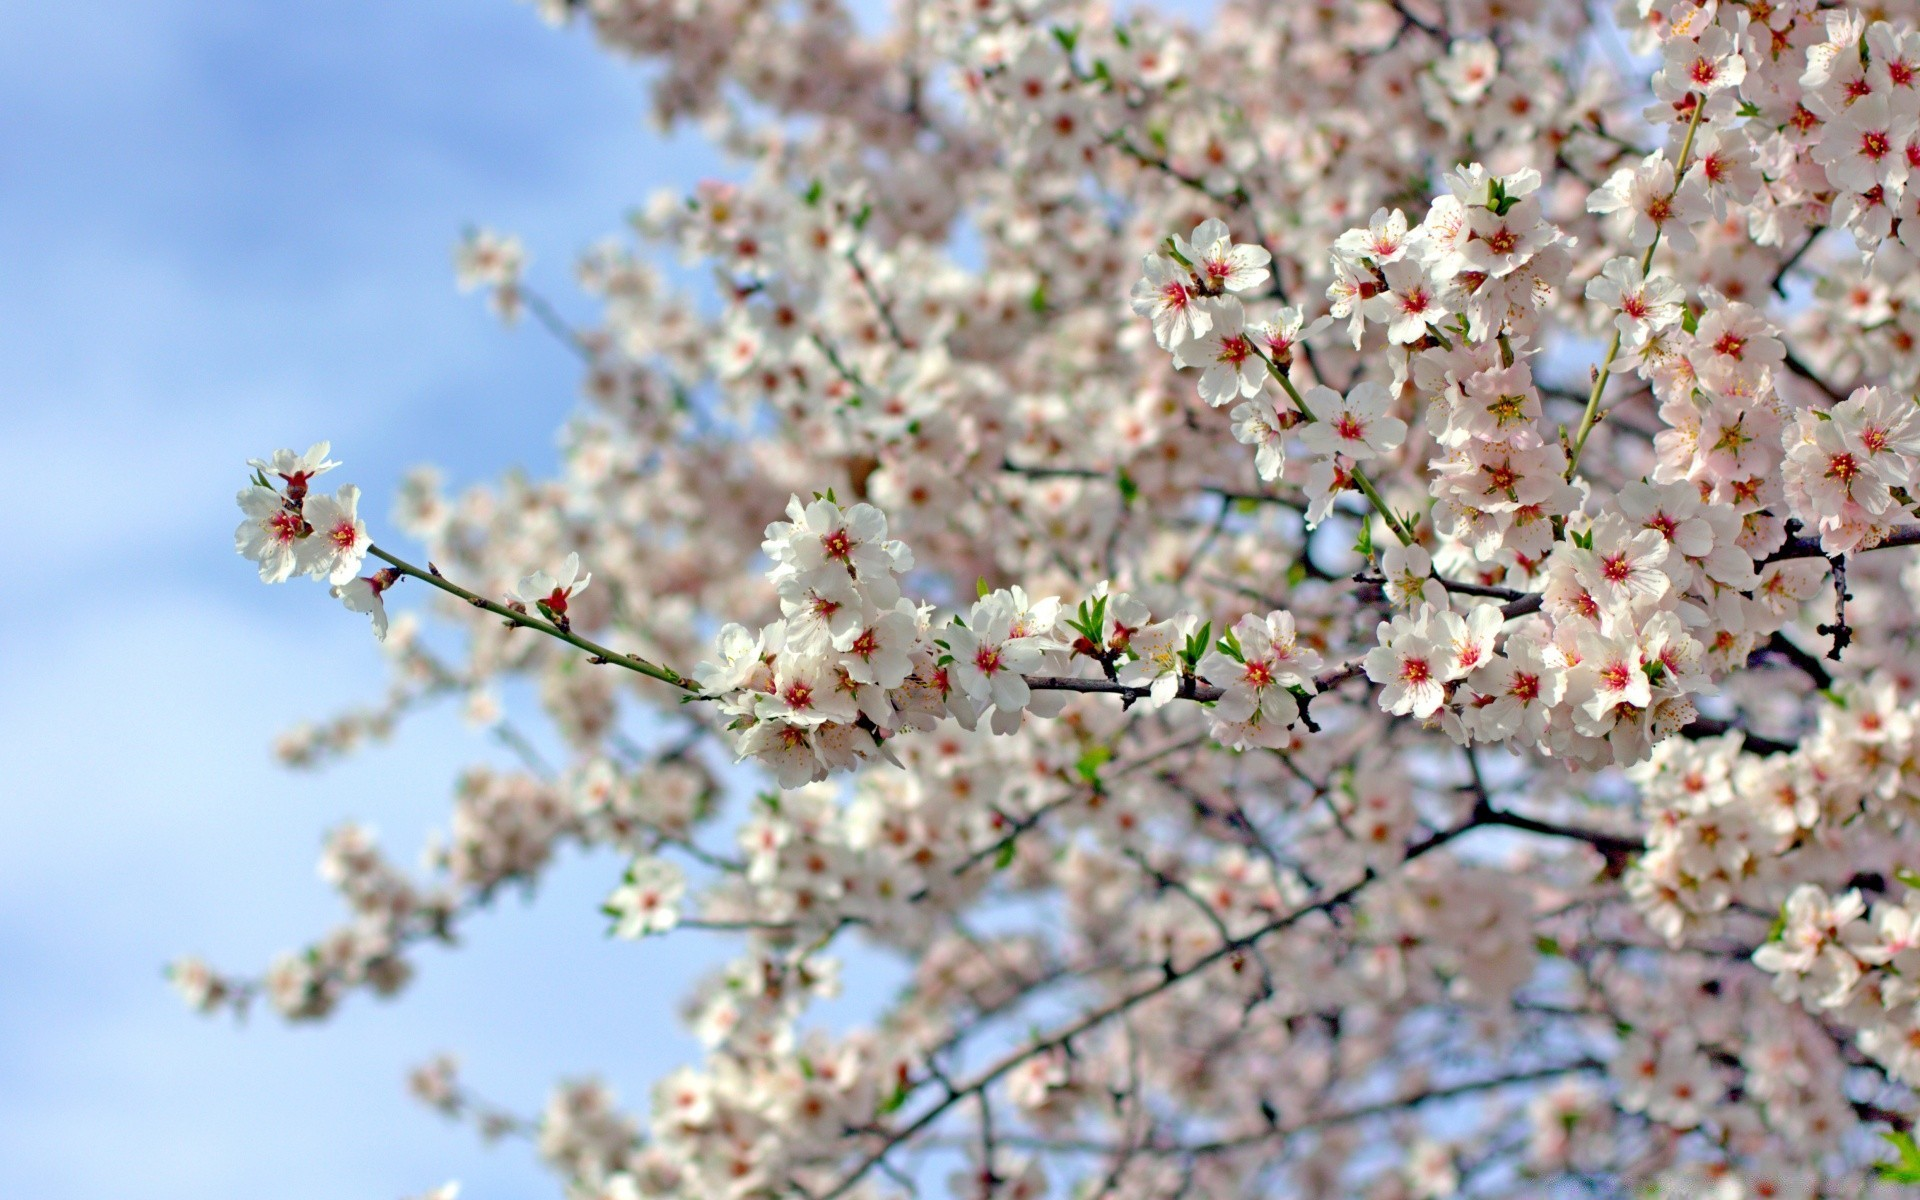 flowers cherry branch tree flower season nature apple plum flora bud springtime blooming growth close-up petal garden outdoors bright leaf sunny